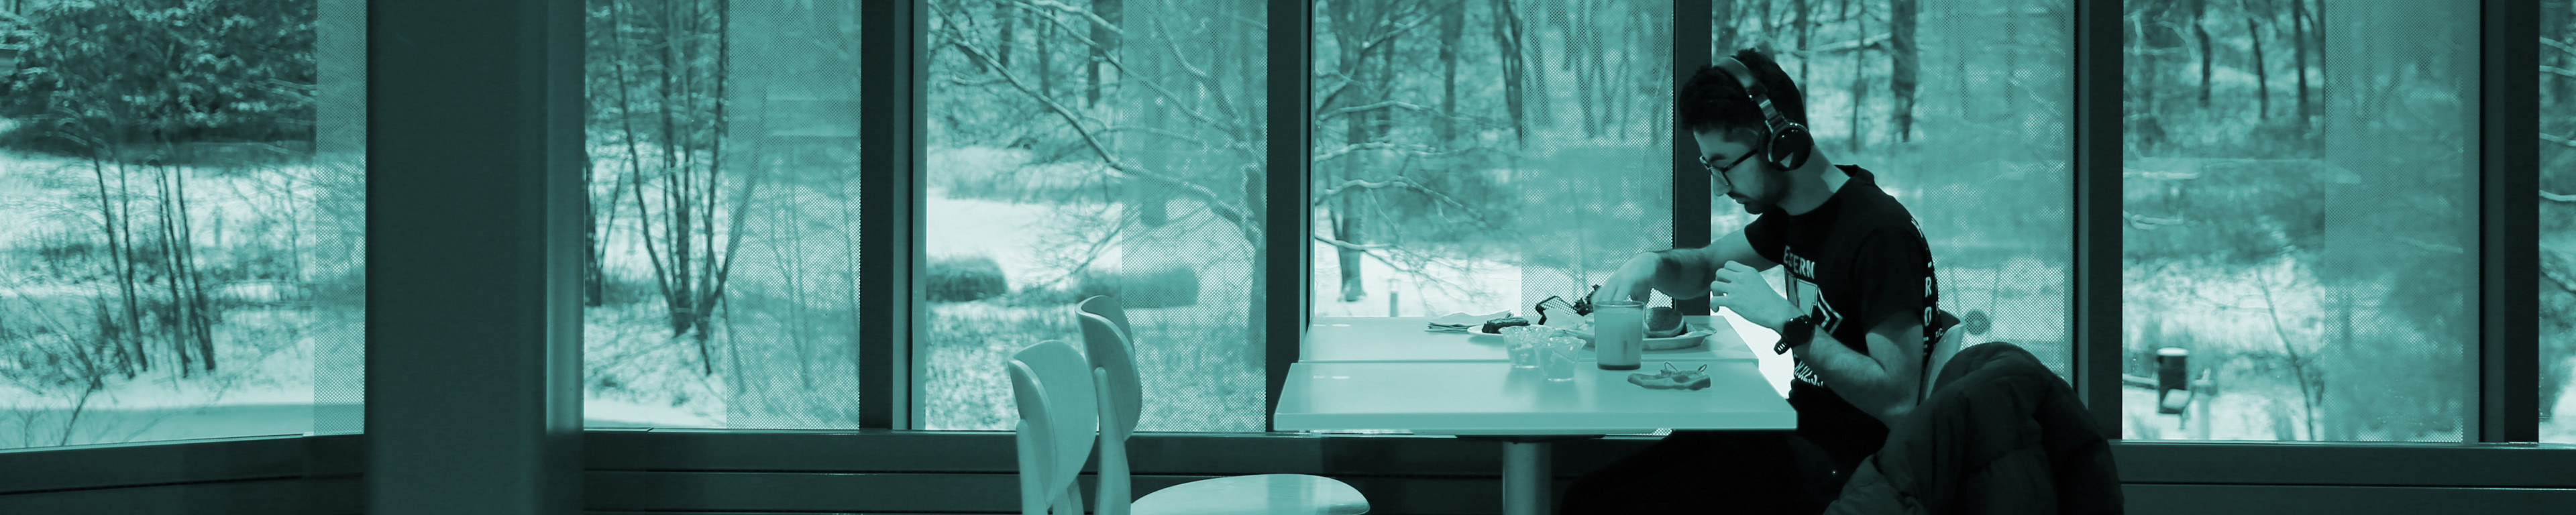 Student sitting by window in Valley Dining Center, snowy background